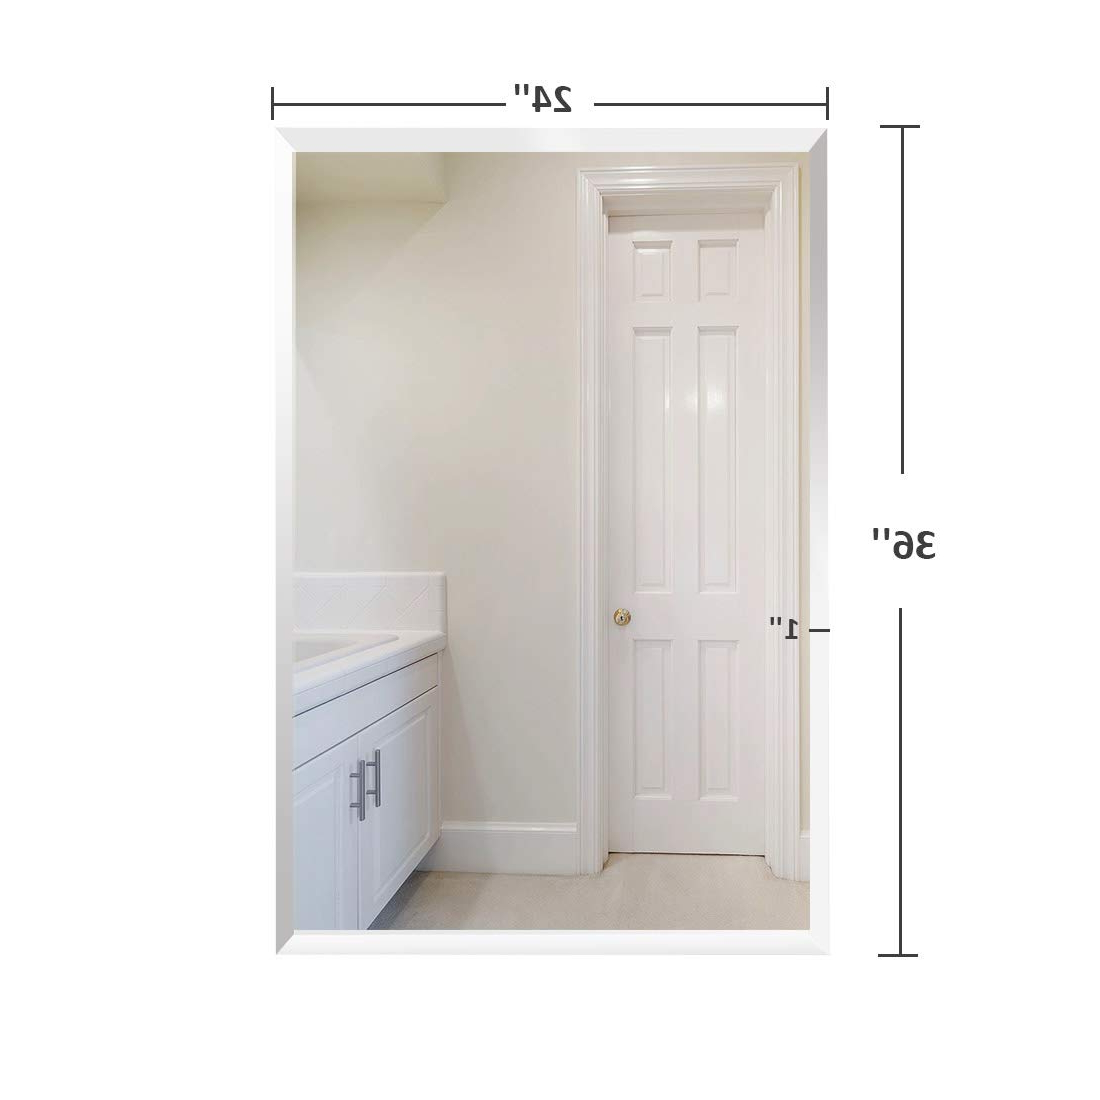 """Bathroom Mirror Wall Mounted, Frameless Mirrors For Wall 24""""x36"""", Large Wall Mirror, Gym Mirrors For Home Gym, Silver Backed Rectangular Glass Panel 1 Intended For Newest Wall Mirrors For Home Gym (View 20 of 20)"""